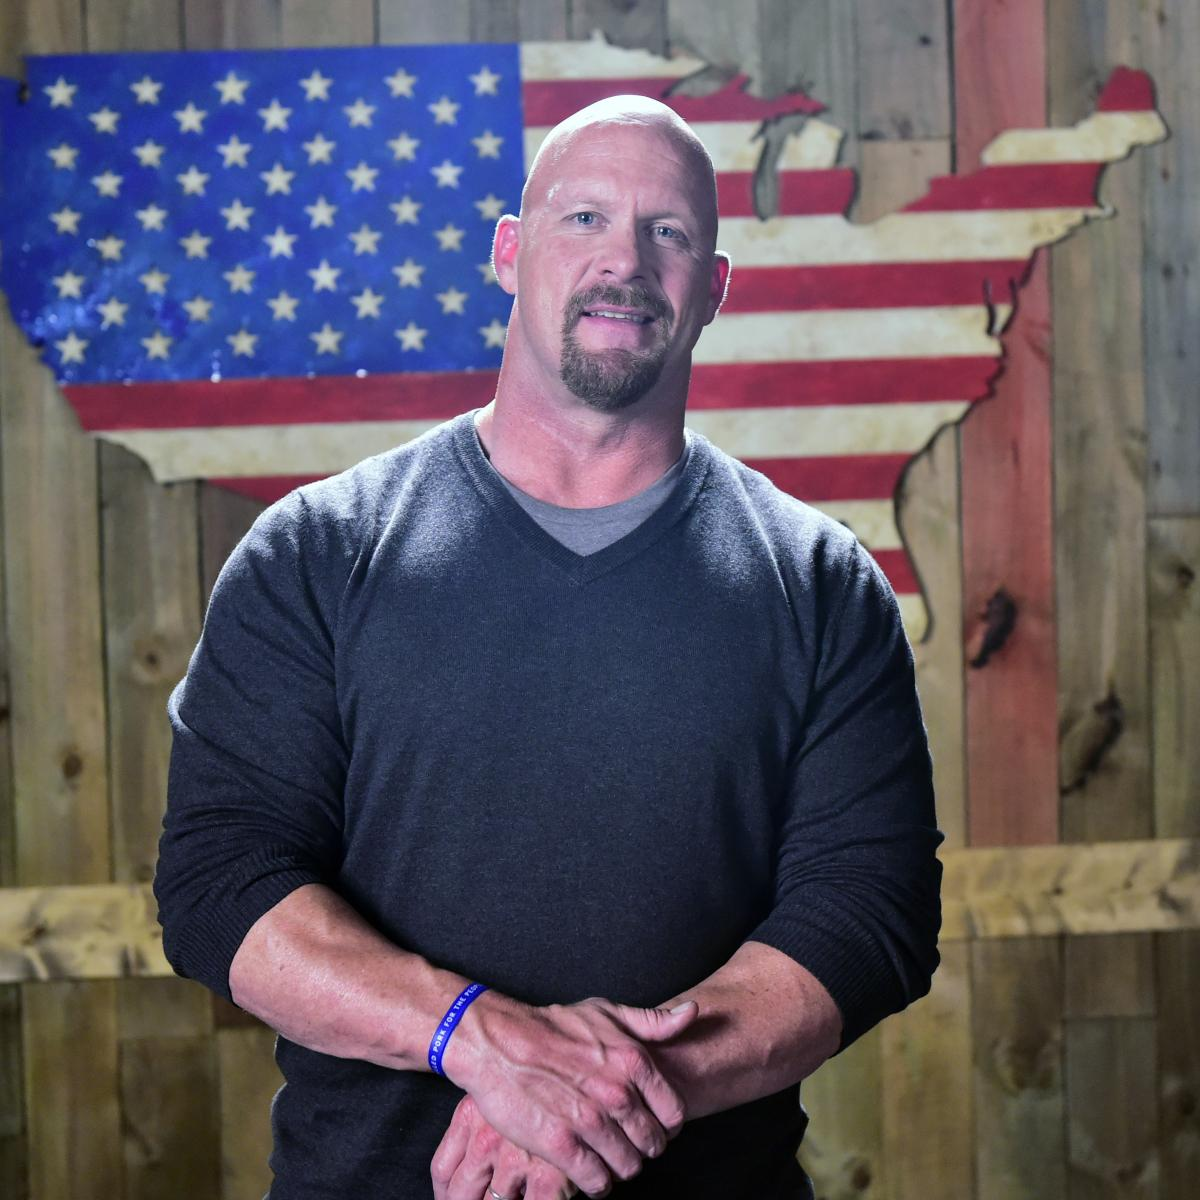 Stone Cold Steve Austin Announces Upcoming WWE Raw Appearance for 3:16 Day